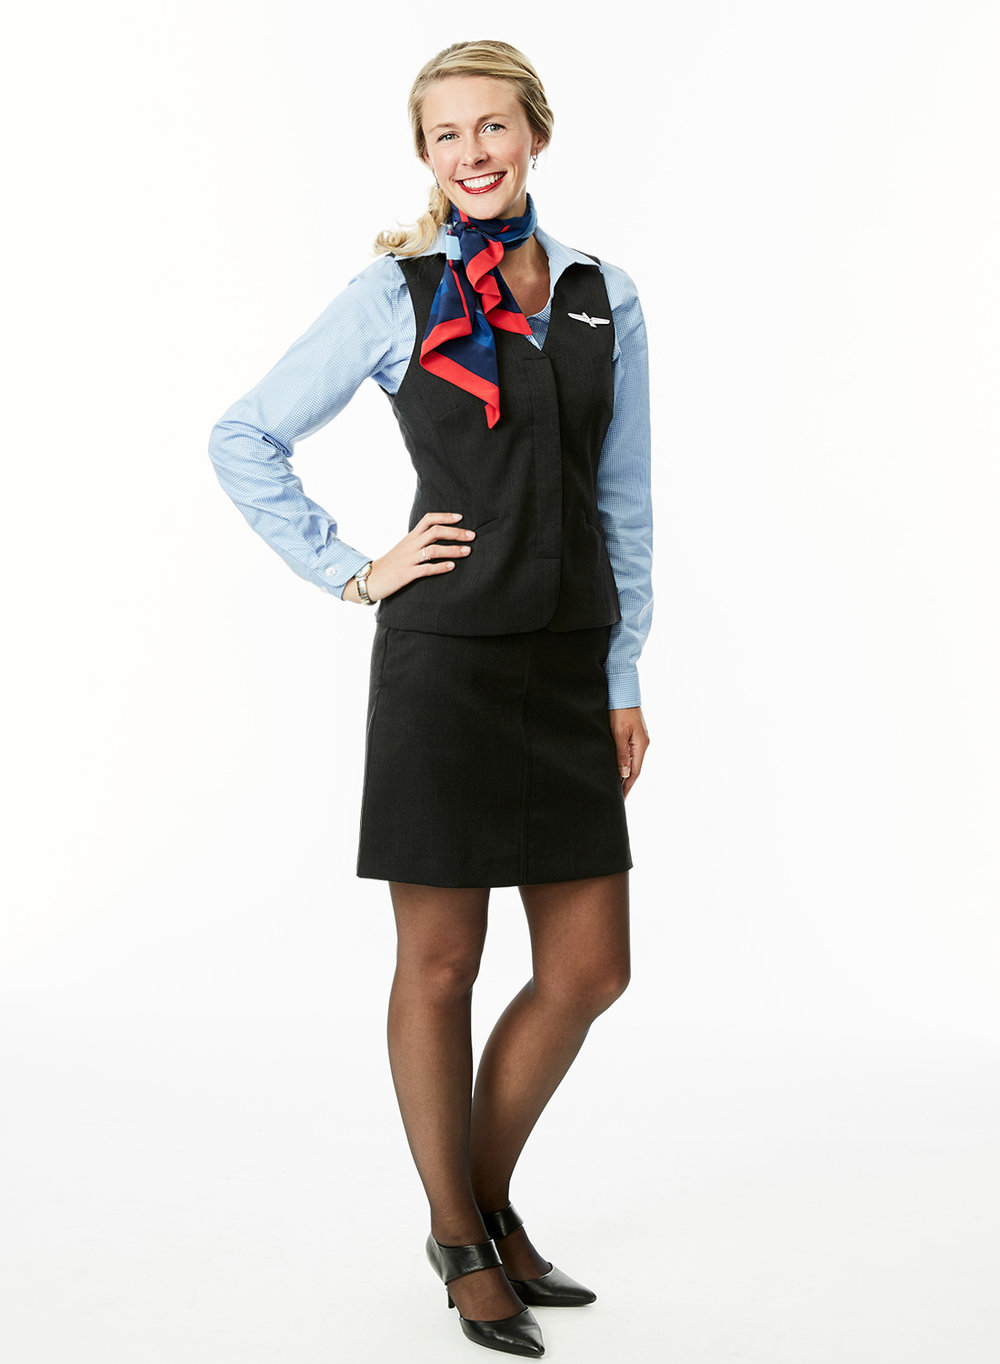 160920_AmericanAirlines_Portraits_By_BriJohnson_0022.jpg